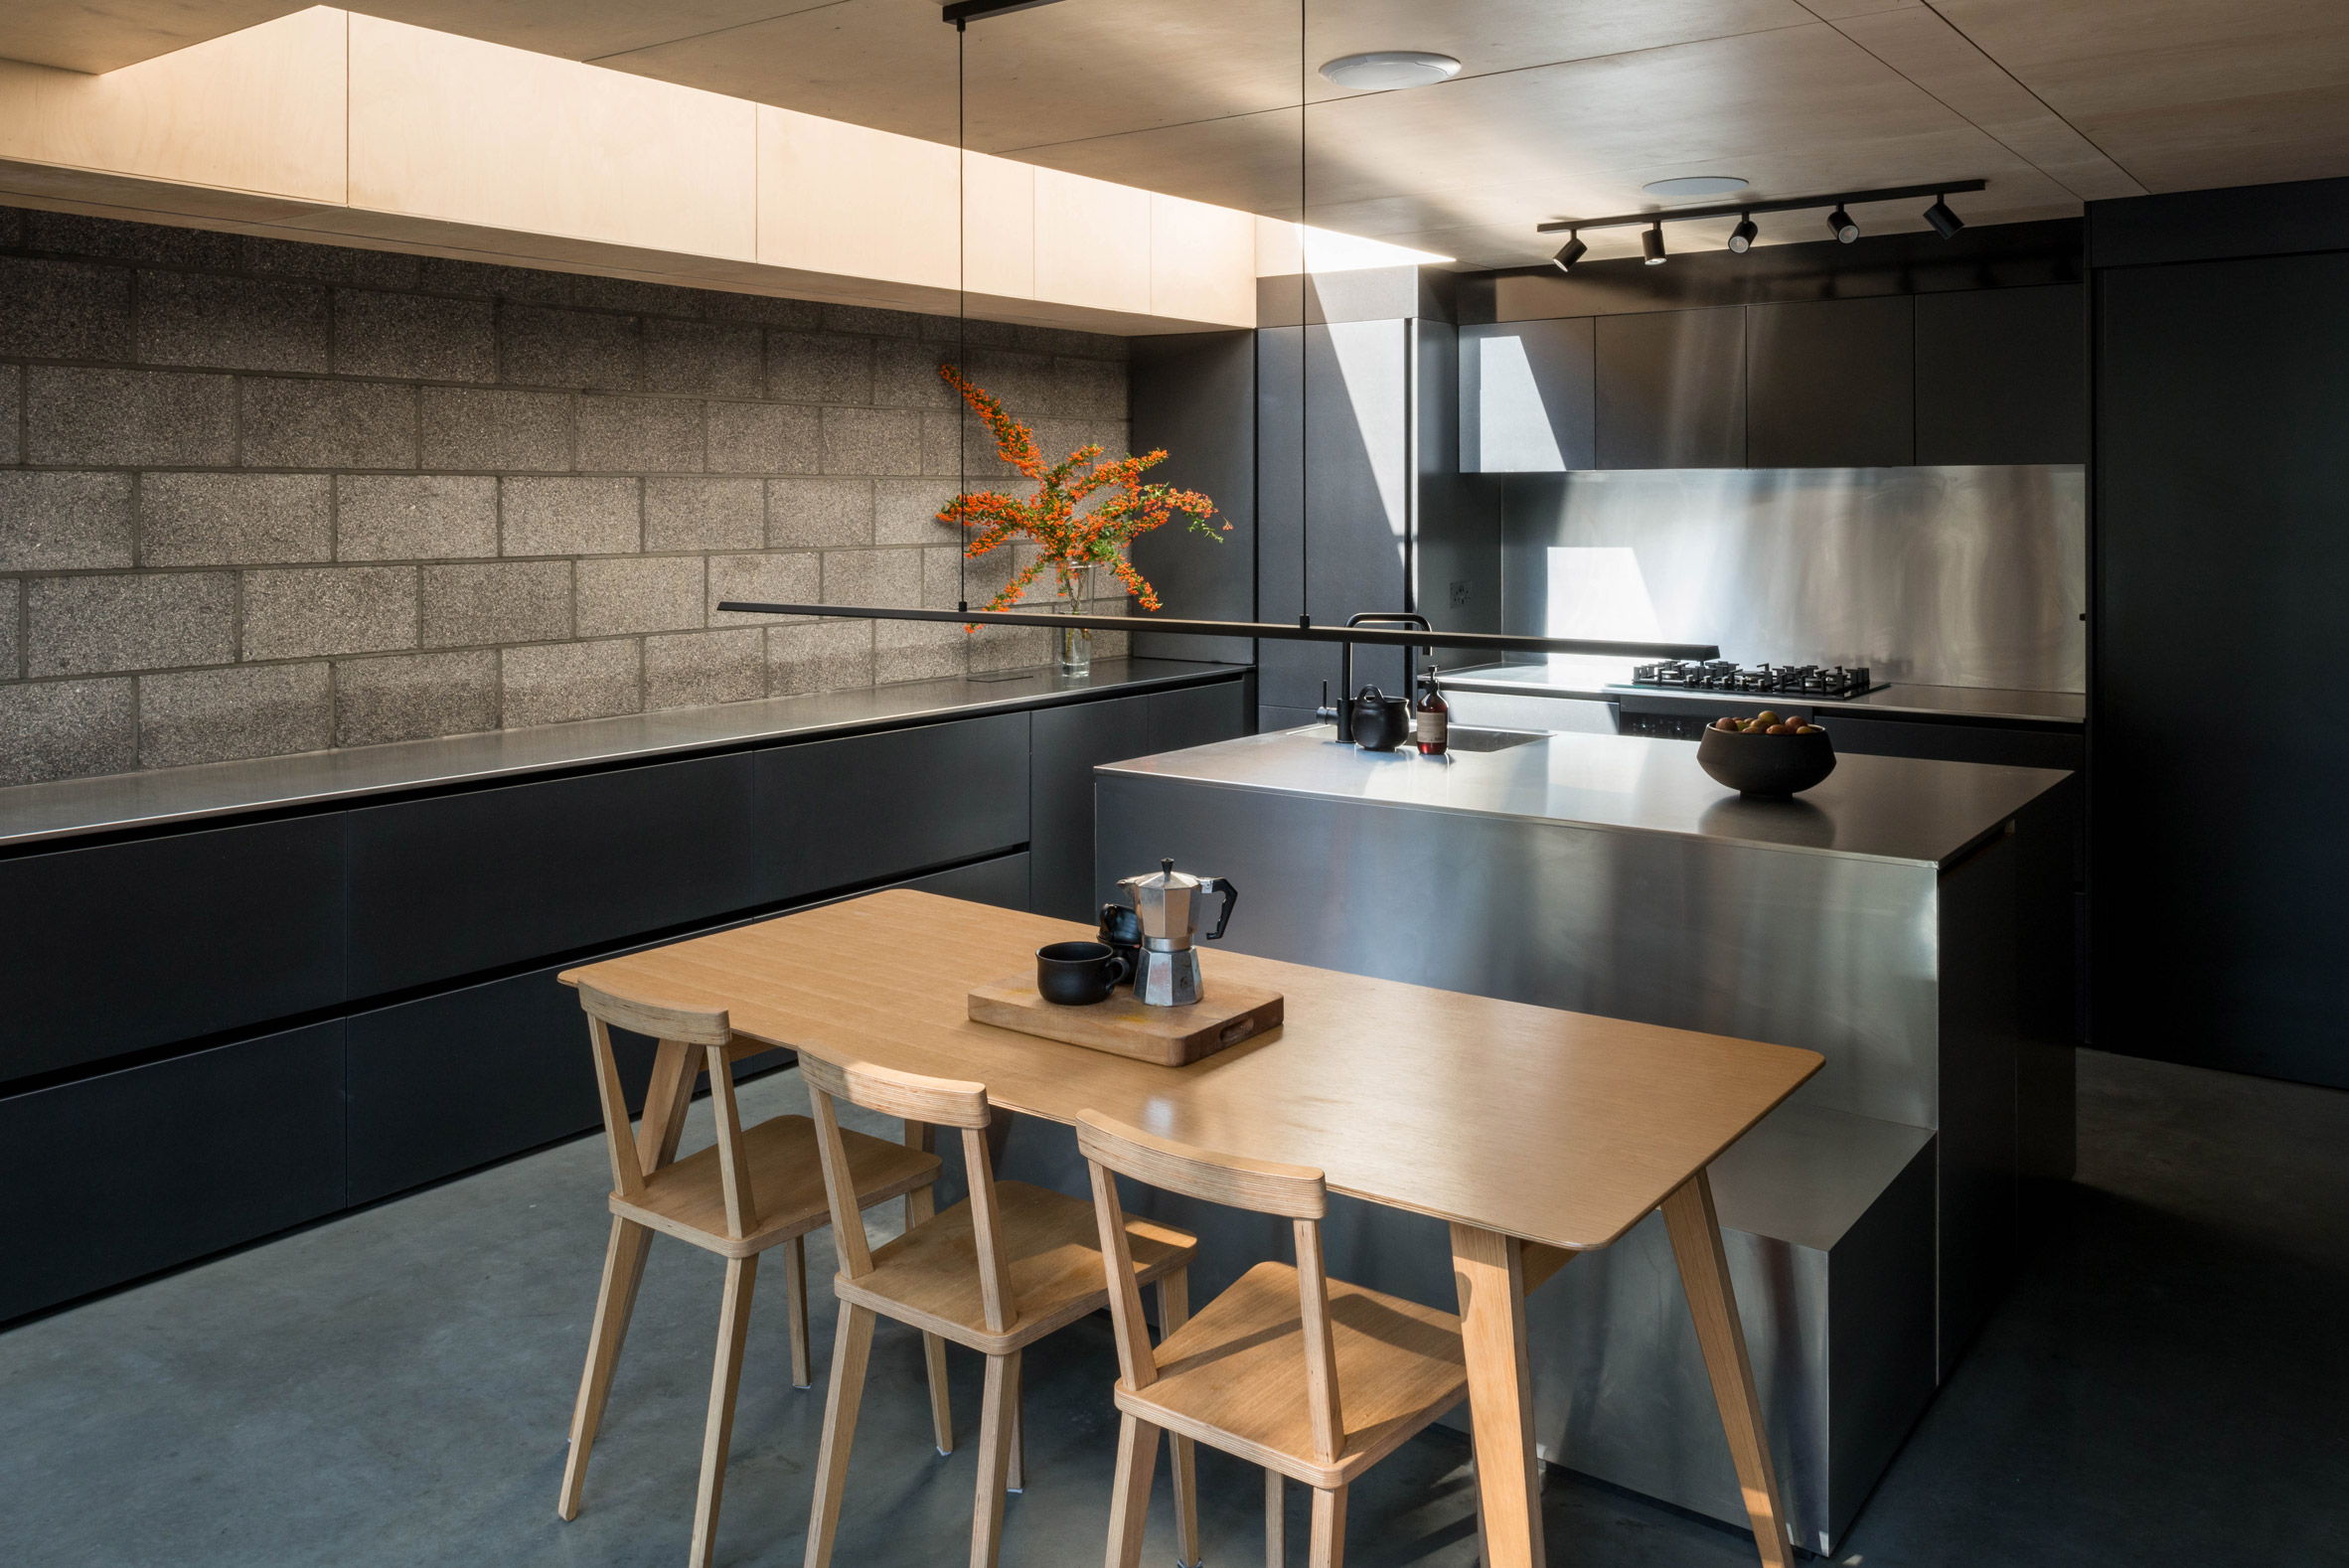 Stainless steel kitchen and pewter brick walls of Hansler Road house extension by Alexander Owen Architecture